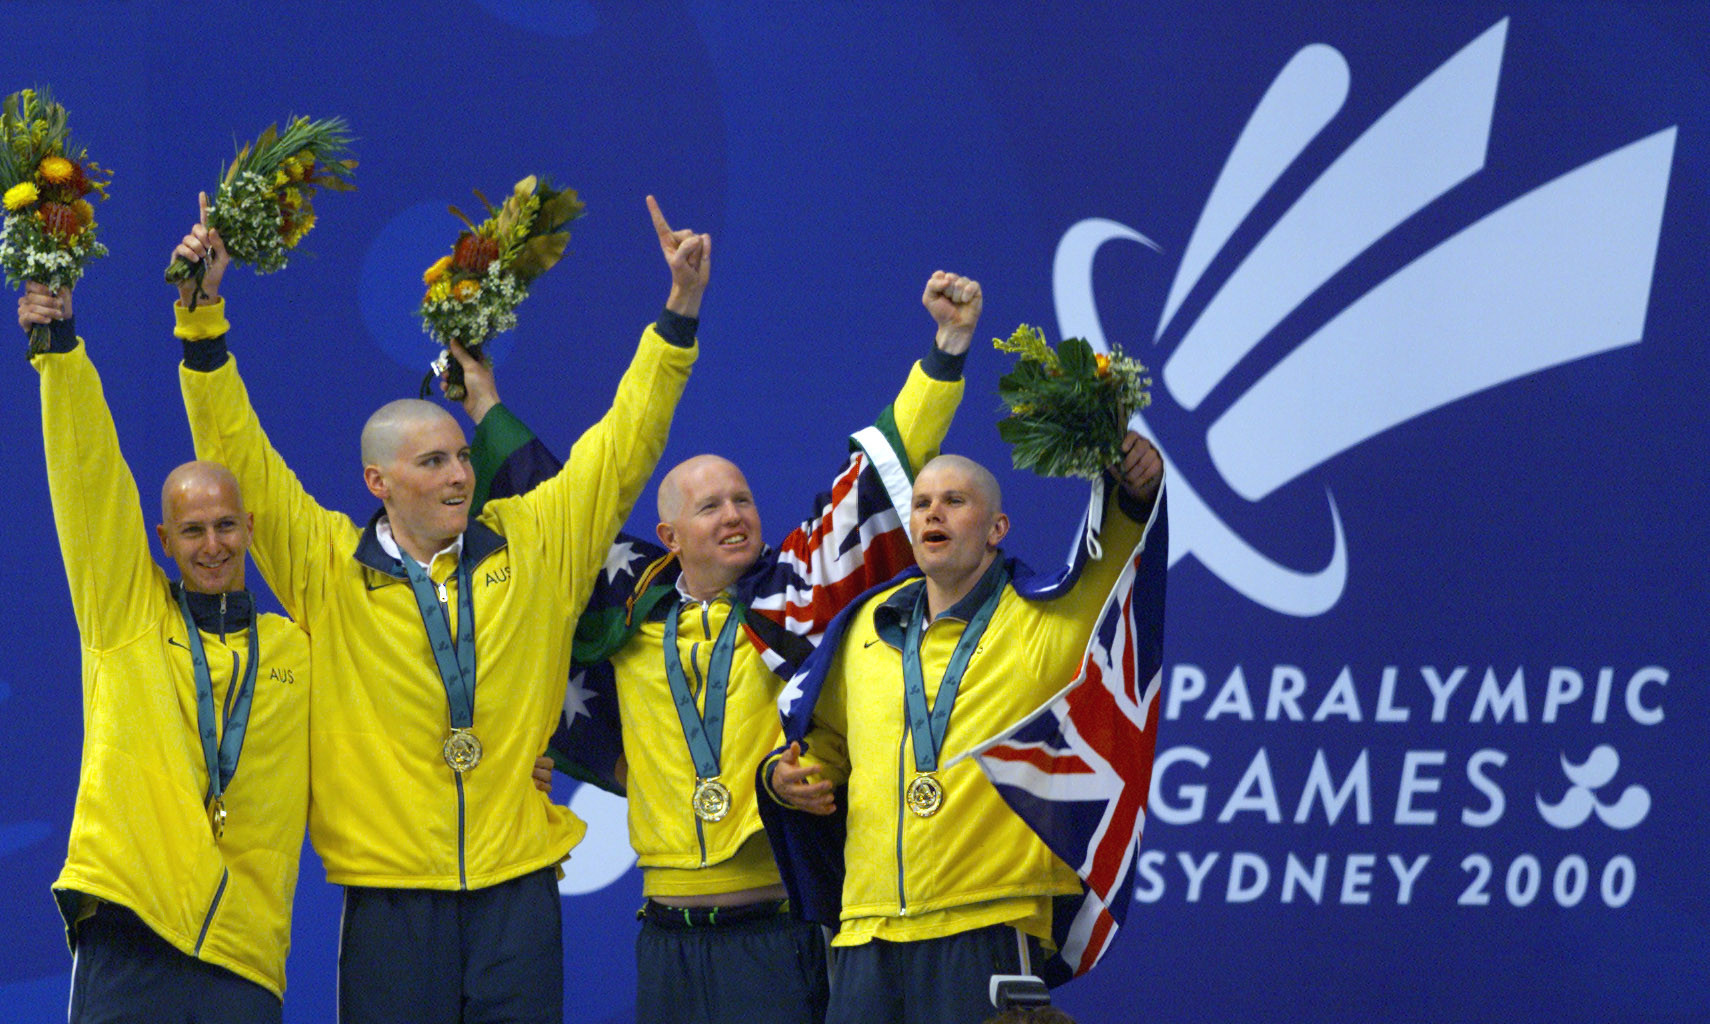 Paralympic gold medallist Patrick Donachie, second left, is the oldest member of the Australian swimming team for the Global Games ©Getty Images